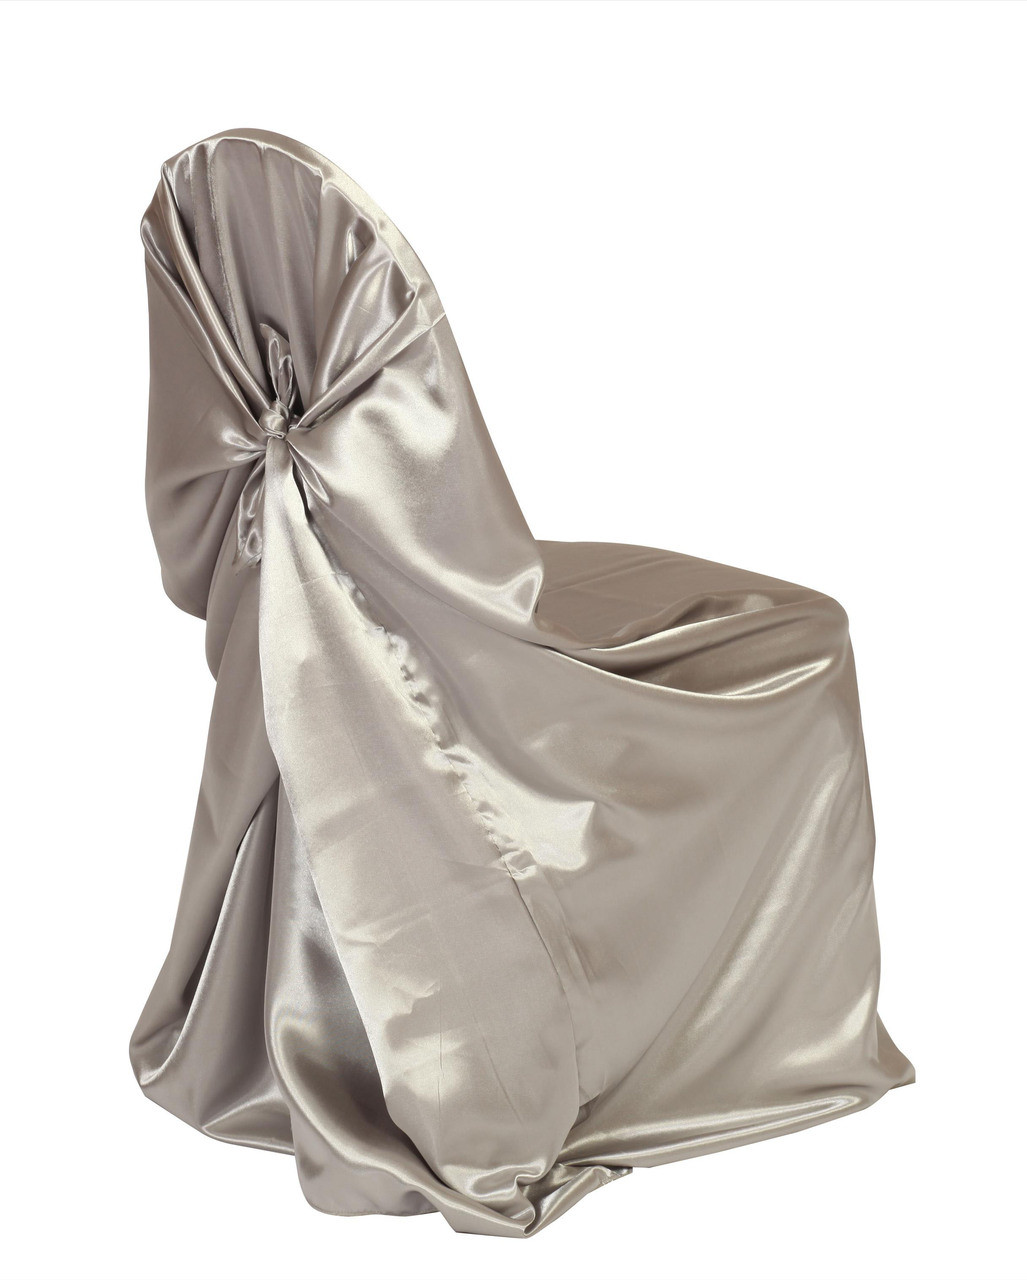 chair covers universal burgundy dining chairs uk satin self tie cover dark silver